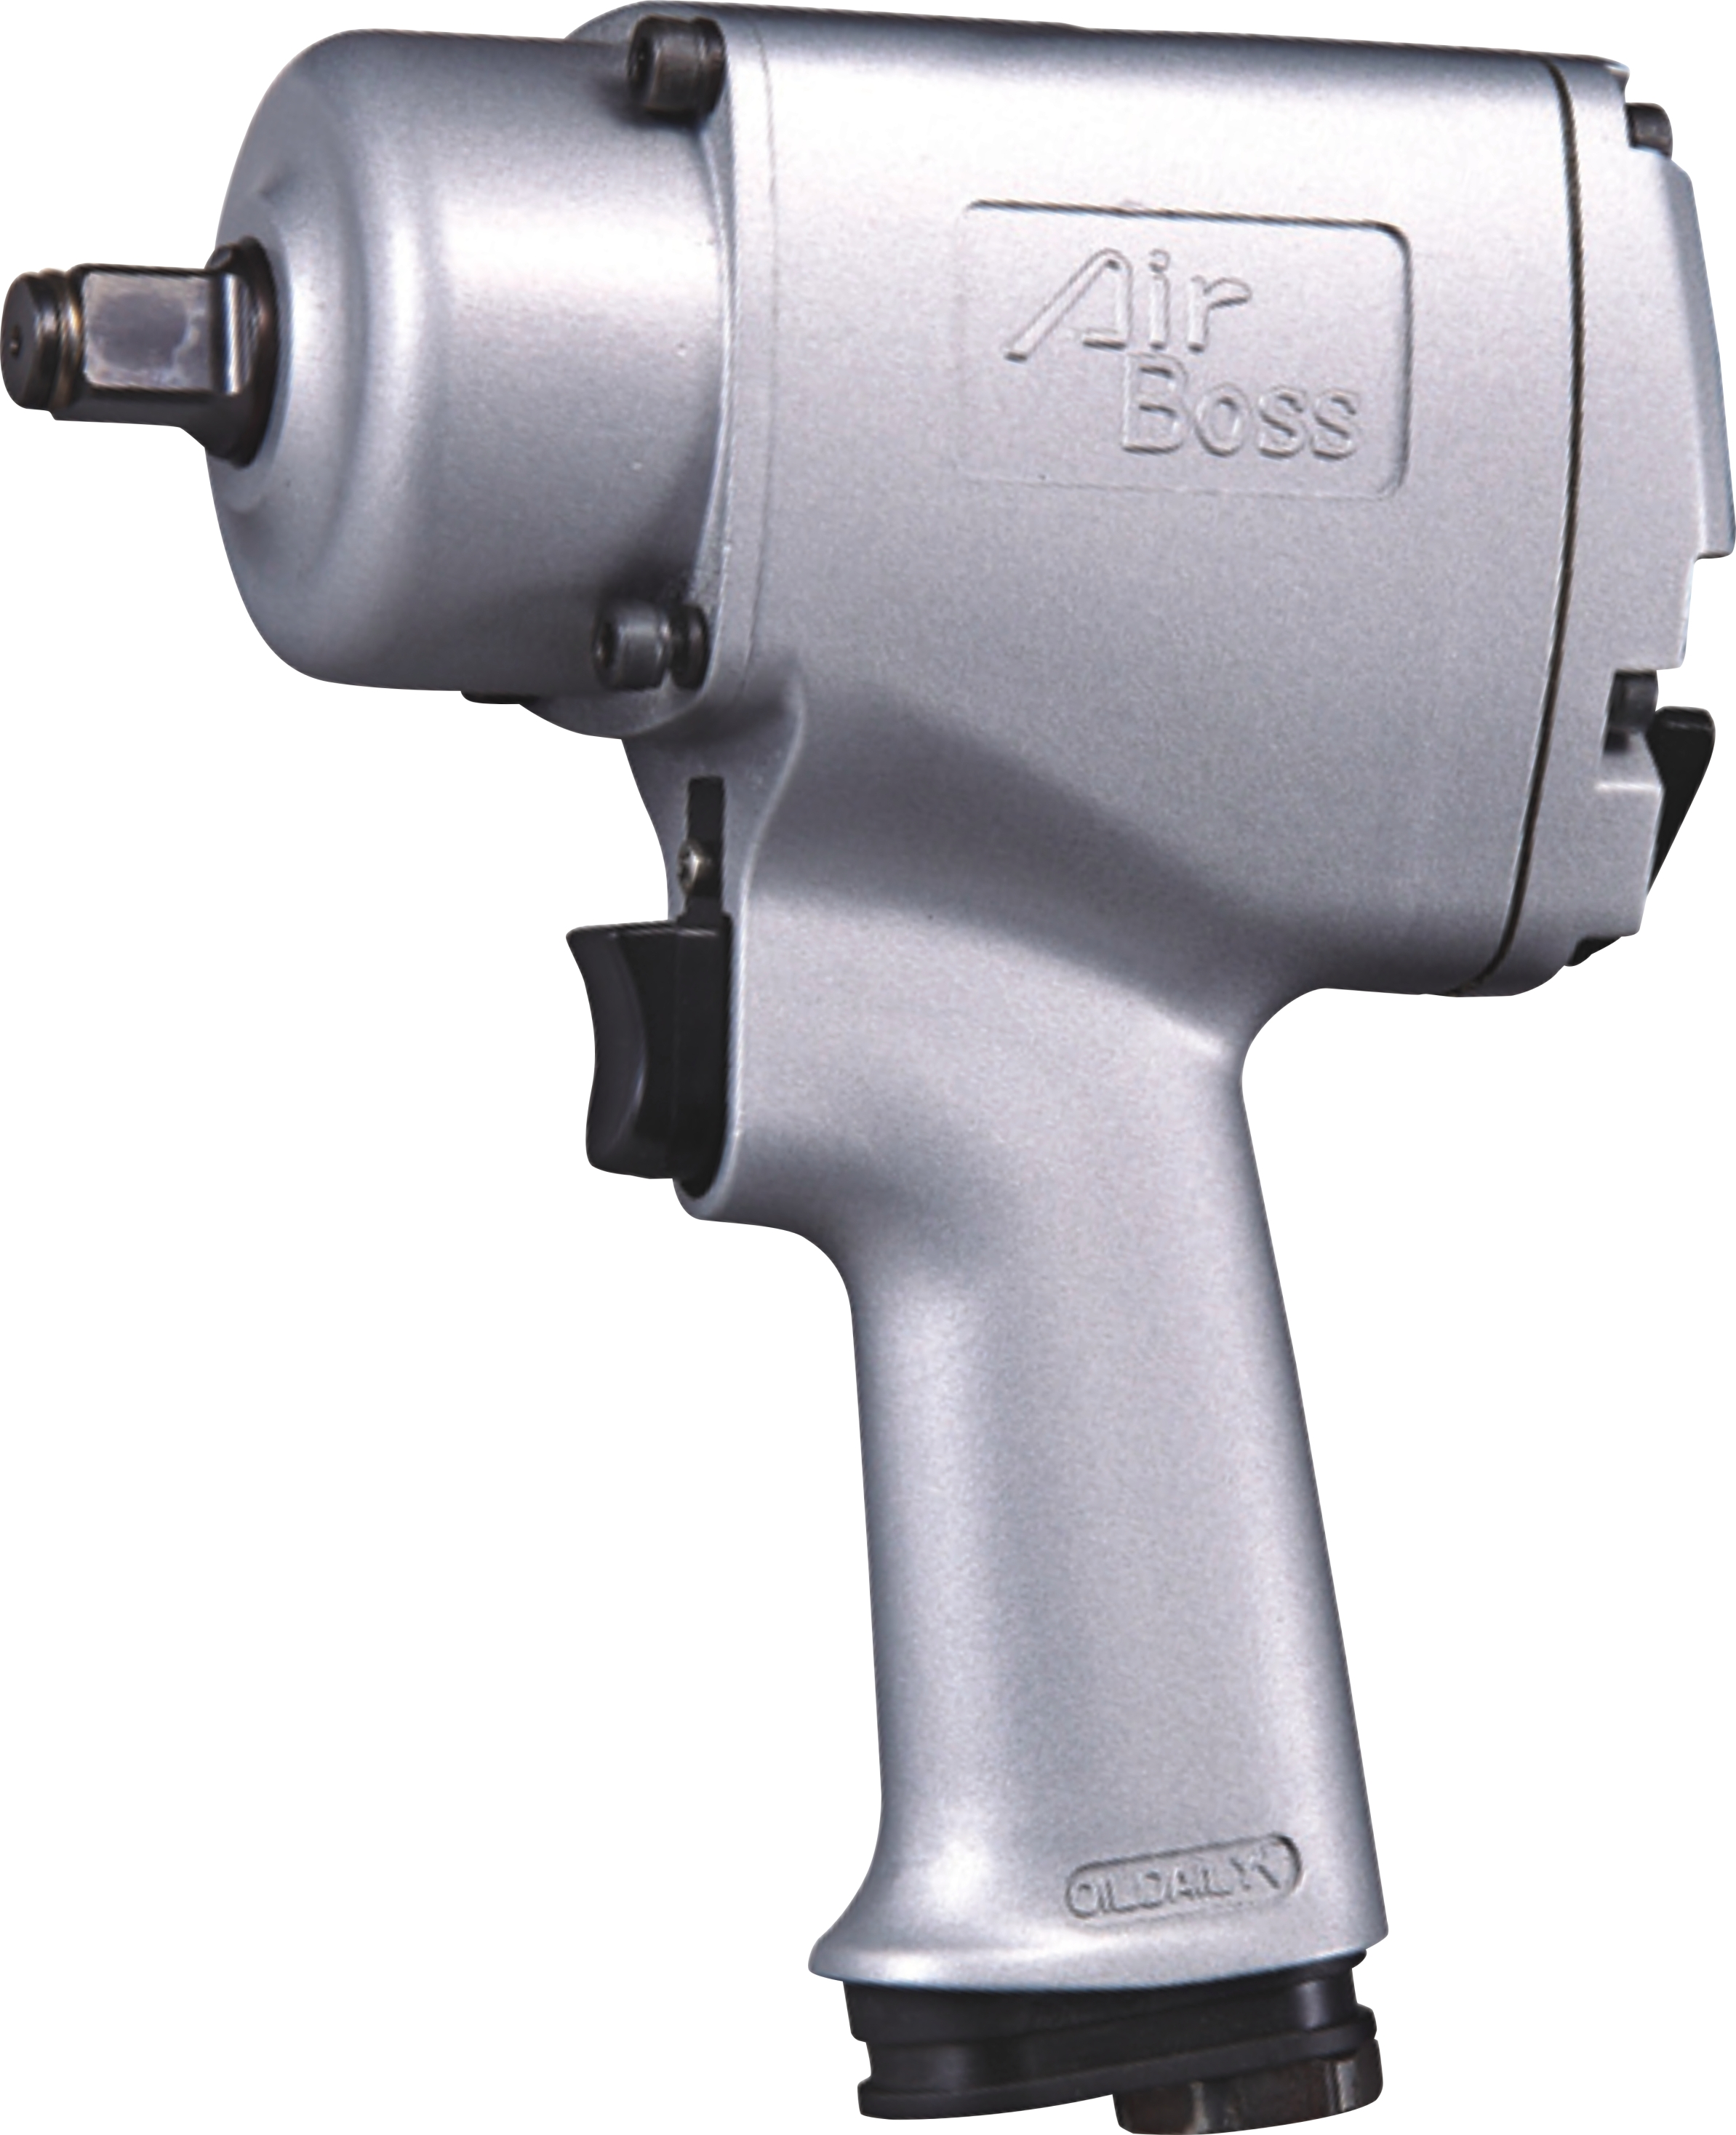 """AirBoss Air Tools Co., Ltd.-1/2"""" Air Impact Wrench - Pistol"""